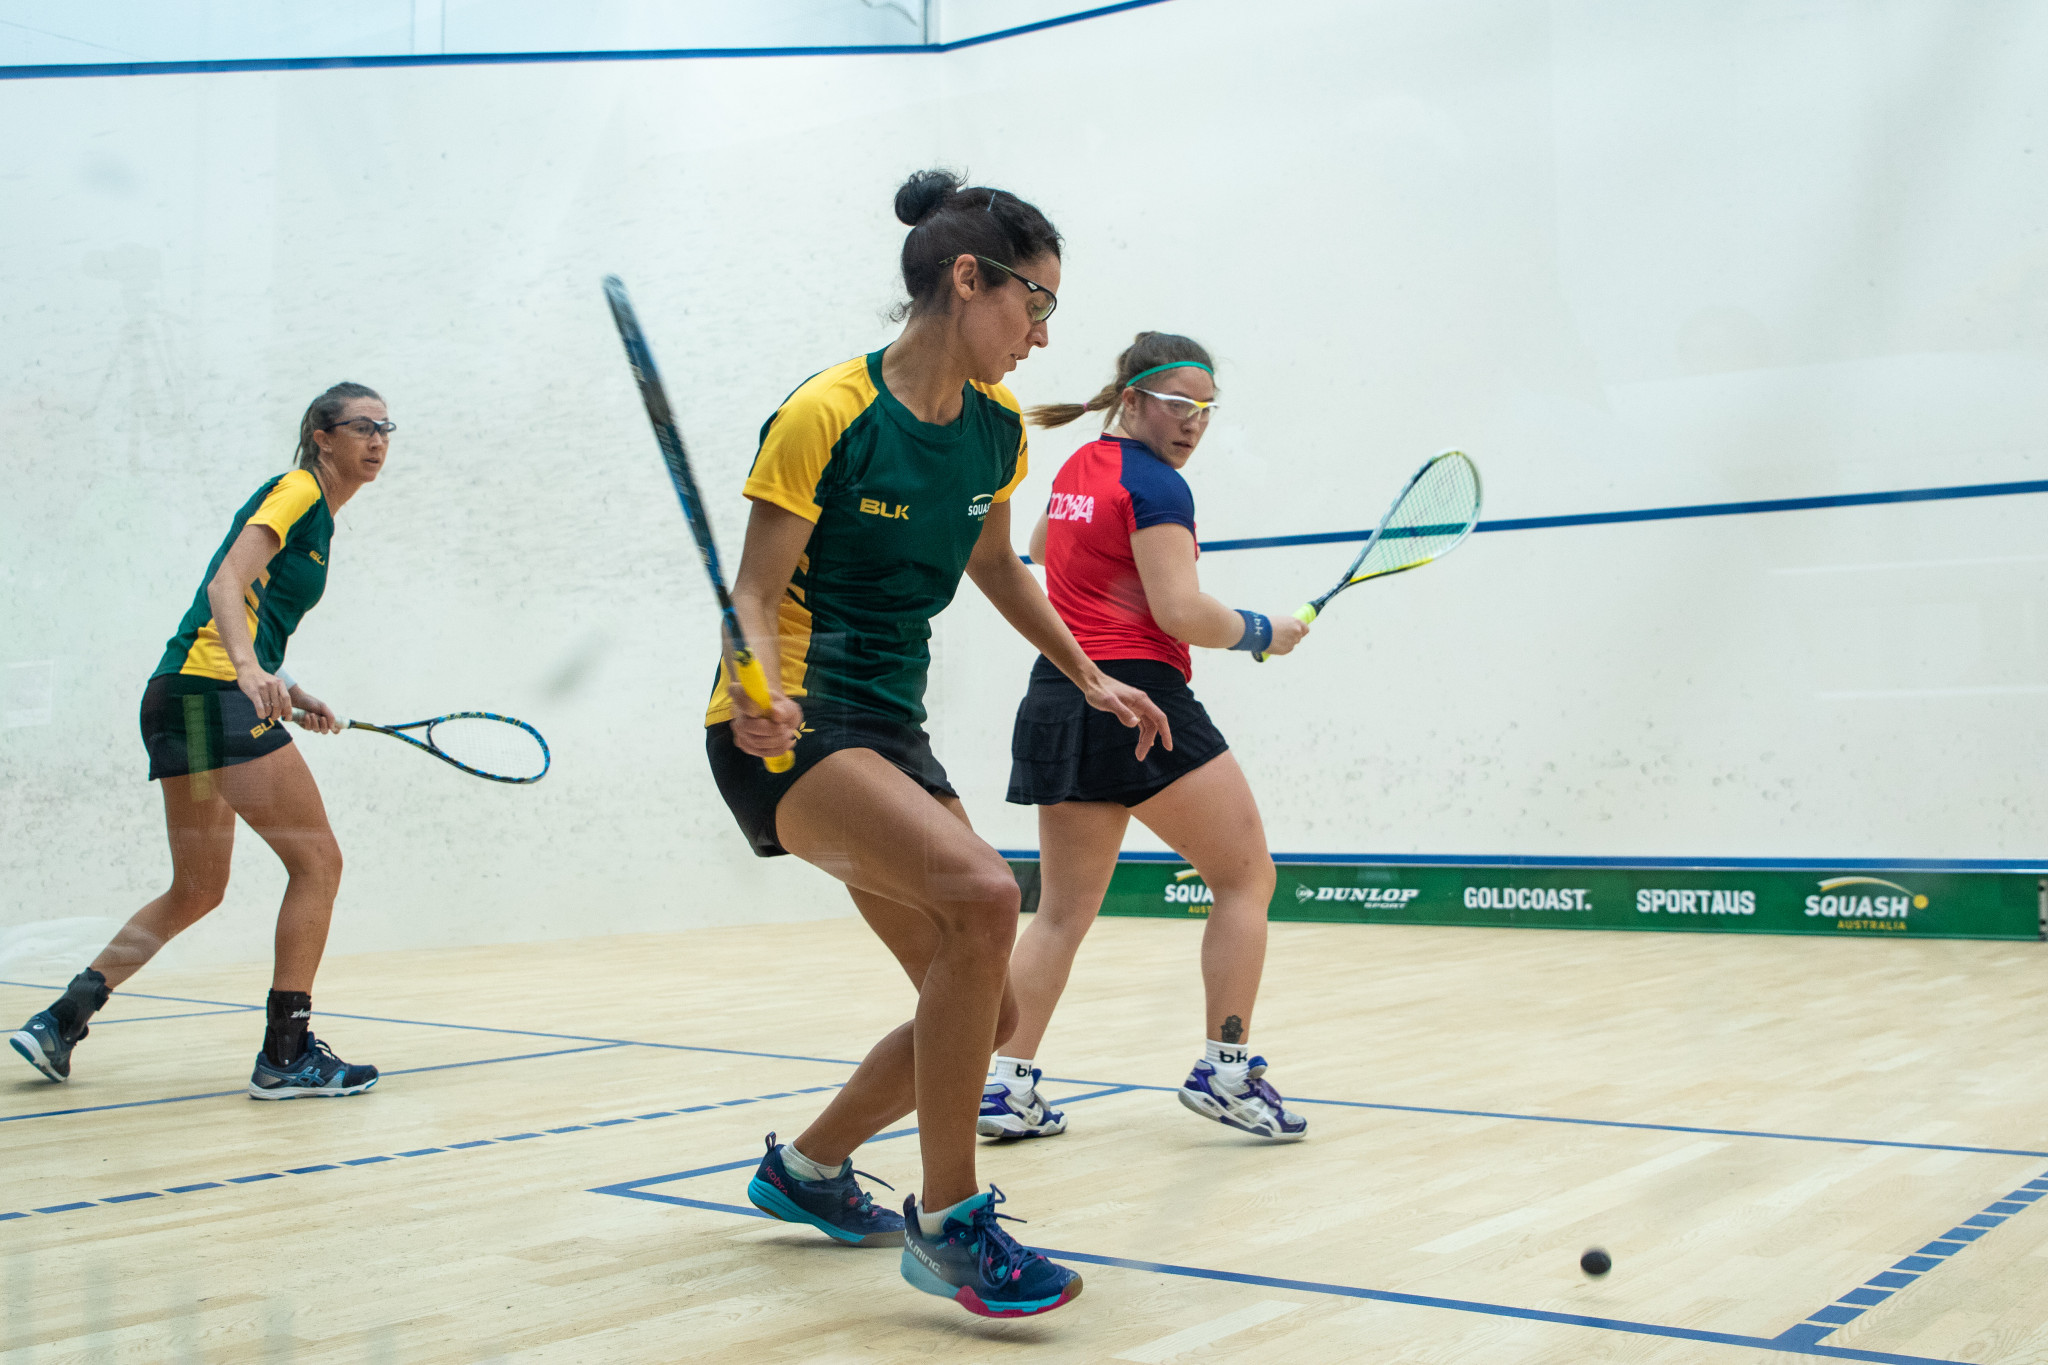 Australia in command on opening day of WSF World Doubles Squash Championships